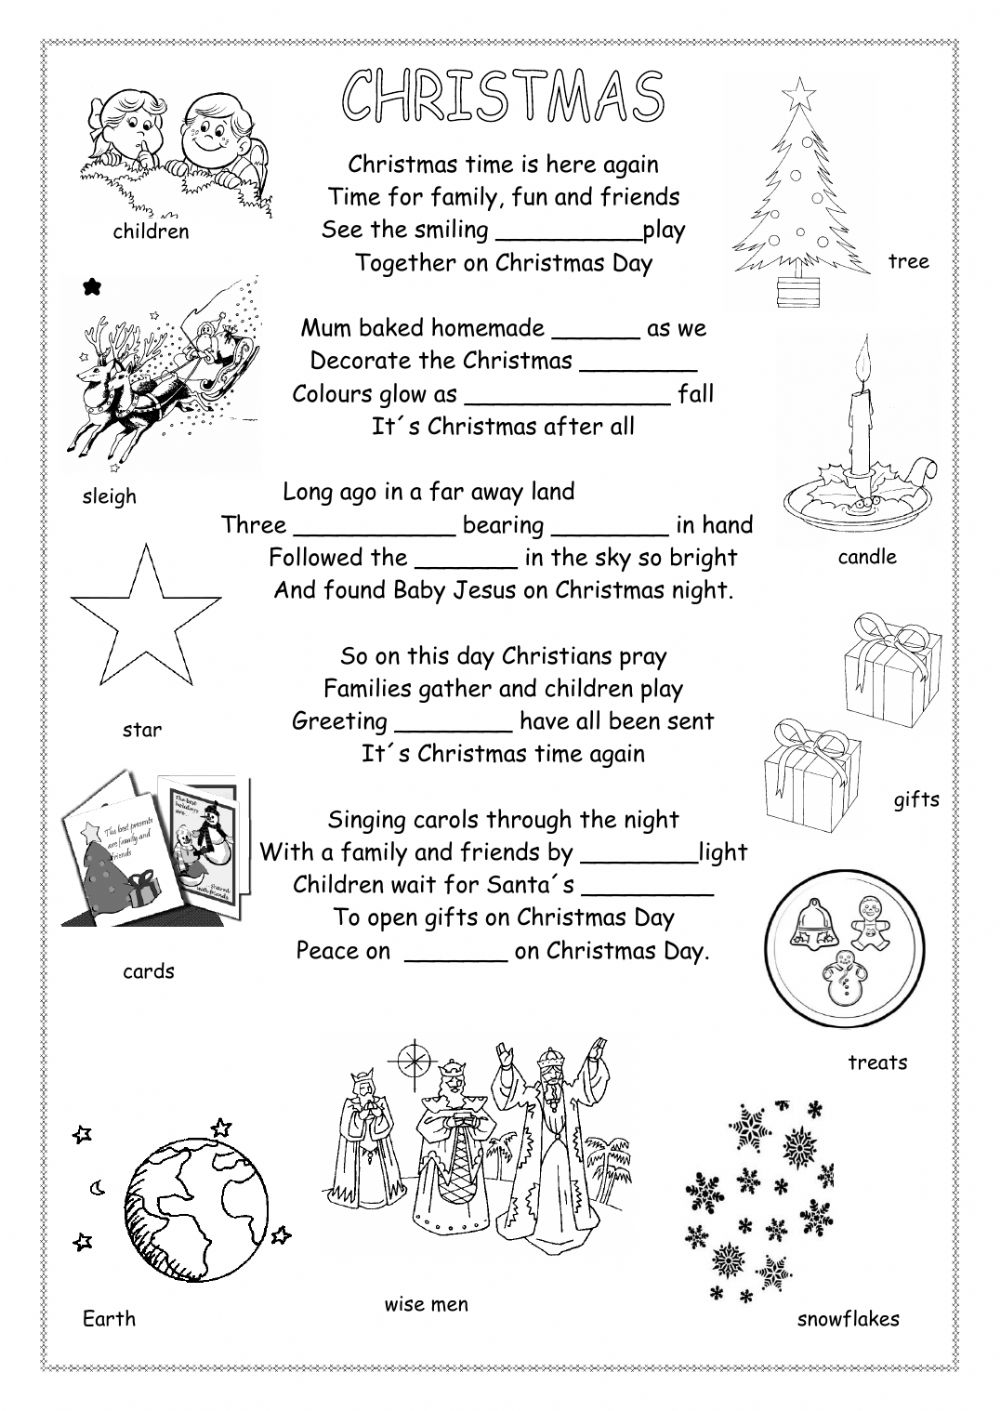 - Christmas Poem - Interactive Worksheet